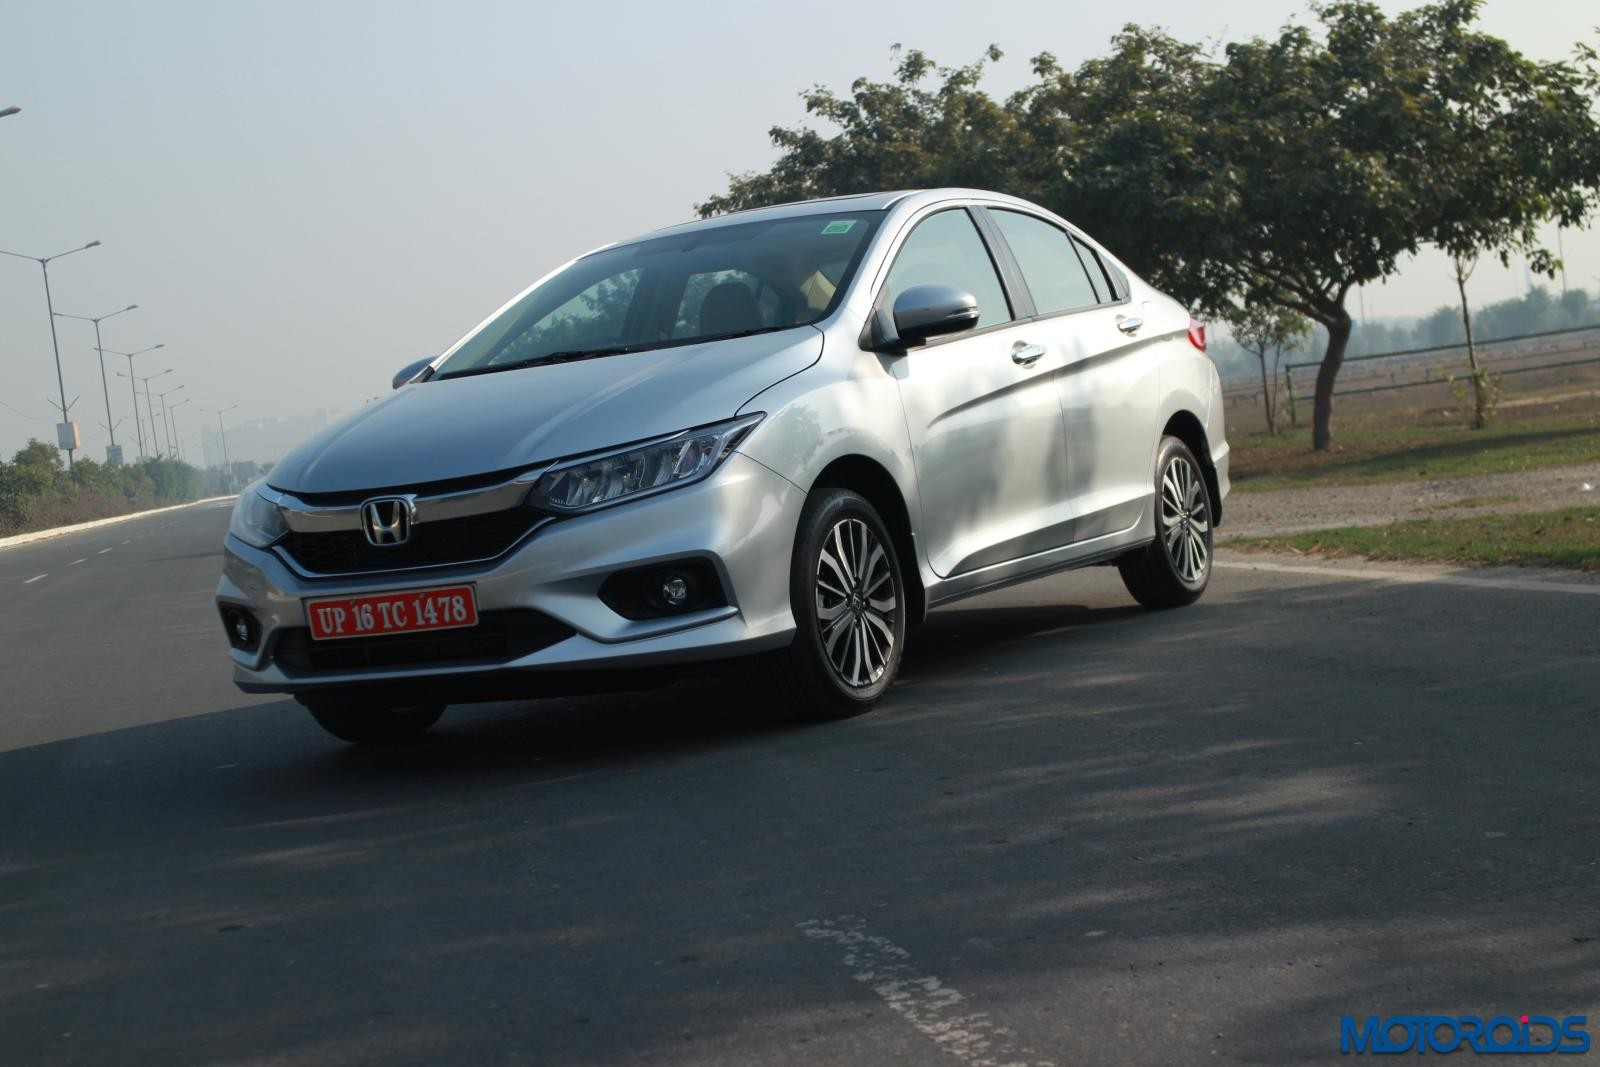 February 16, 2017-2017-Honda-City-Review-74.jpg